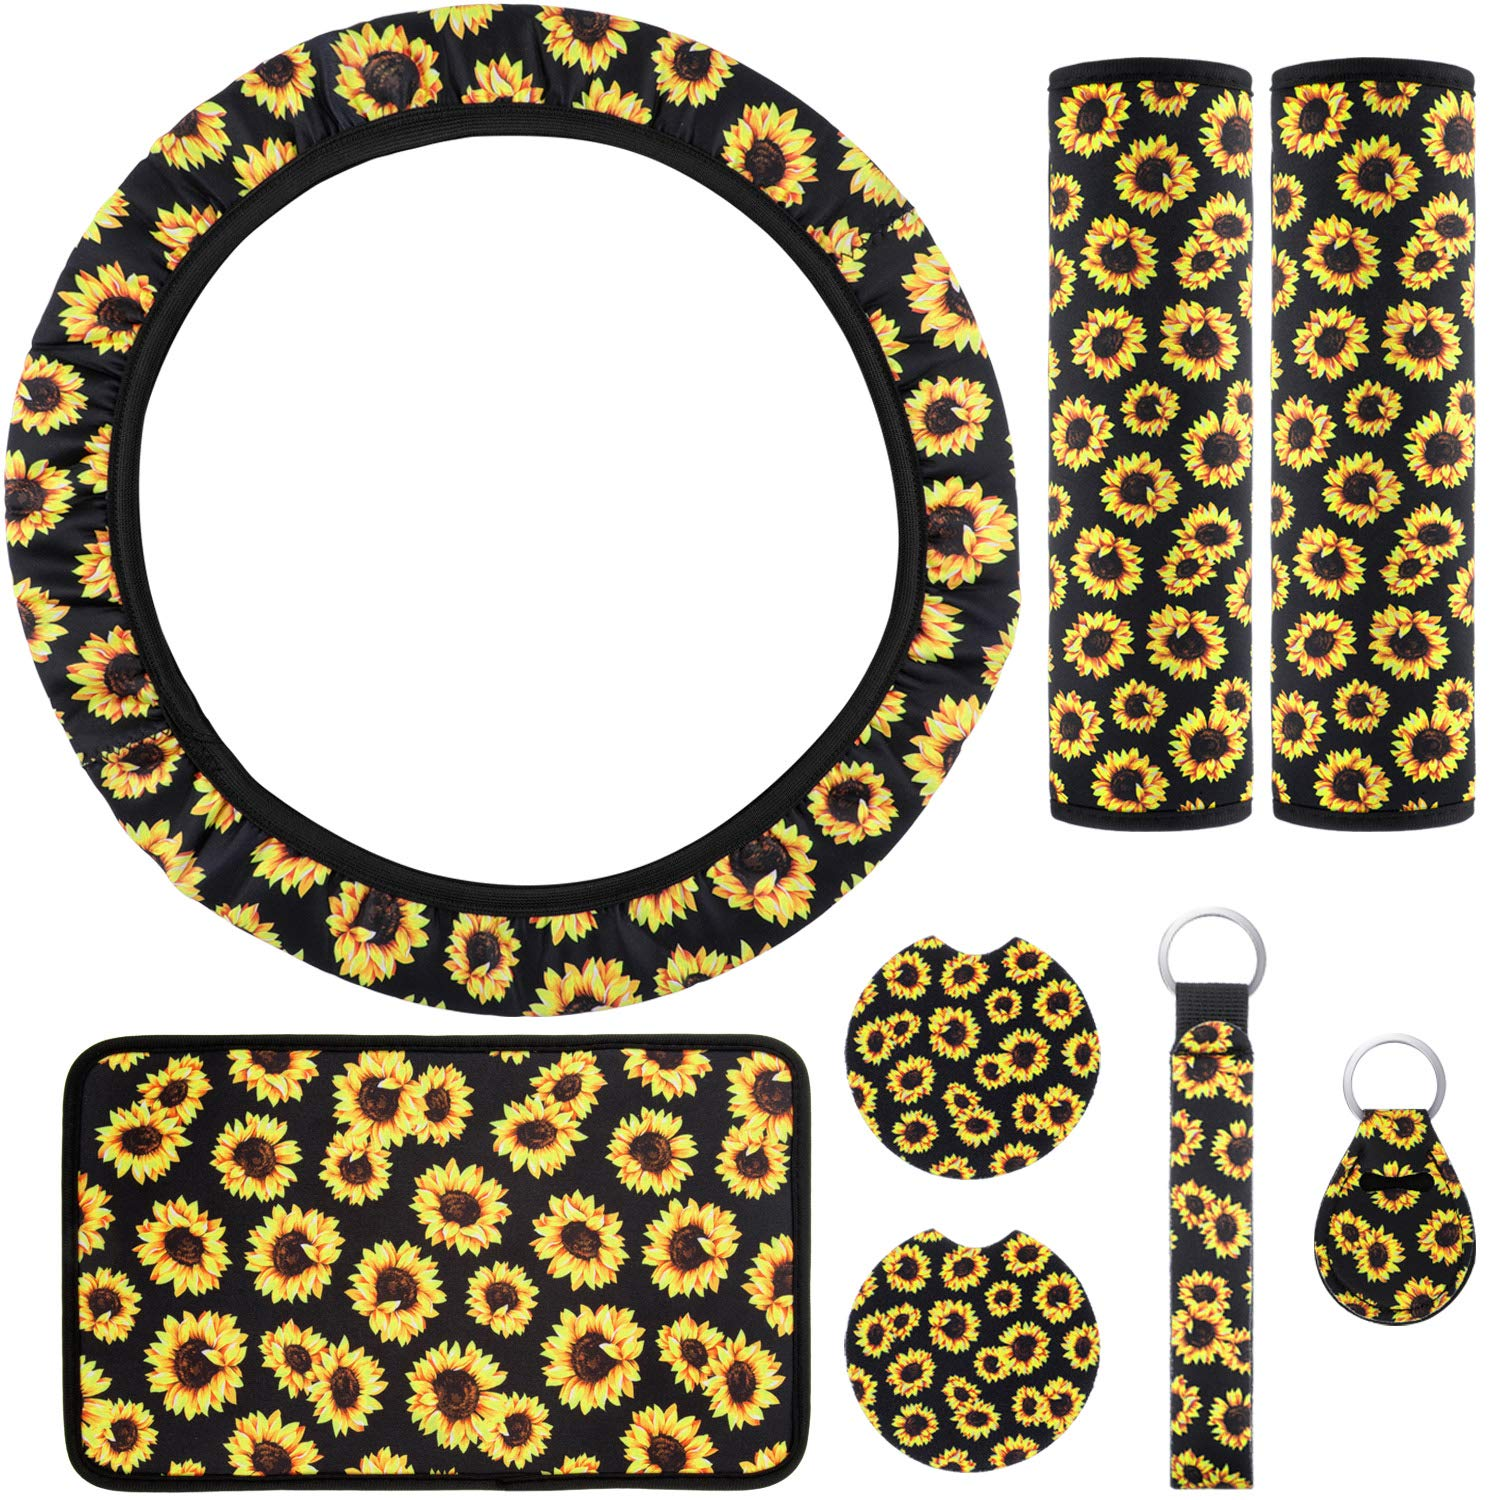 2 Pieces Car Cup Holder Coaster Includes Sunflower Steering Wheel Cover Center Console Armrest Pad 2 Pieces Seat Belt Covers 2 Pieces Sunflowers Keyrings 8 Pieces Sunflower Car Accessories Set